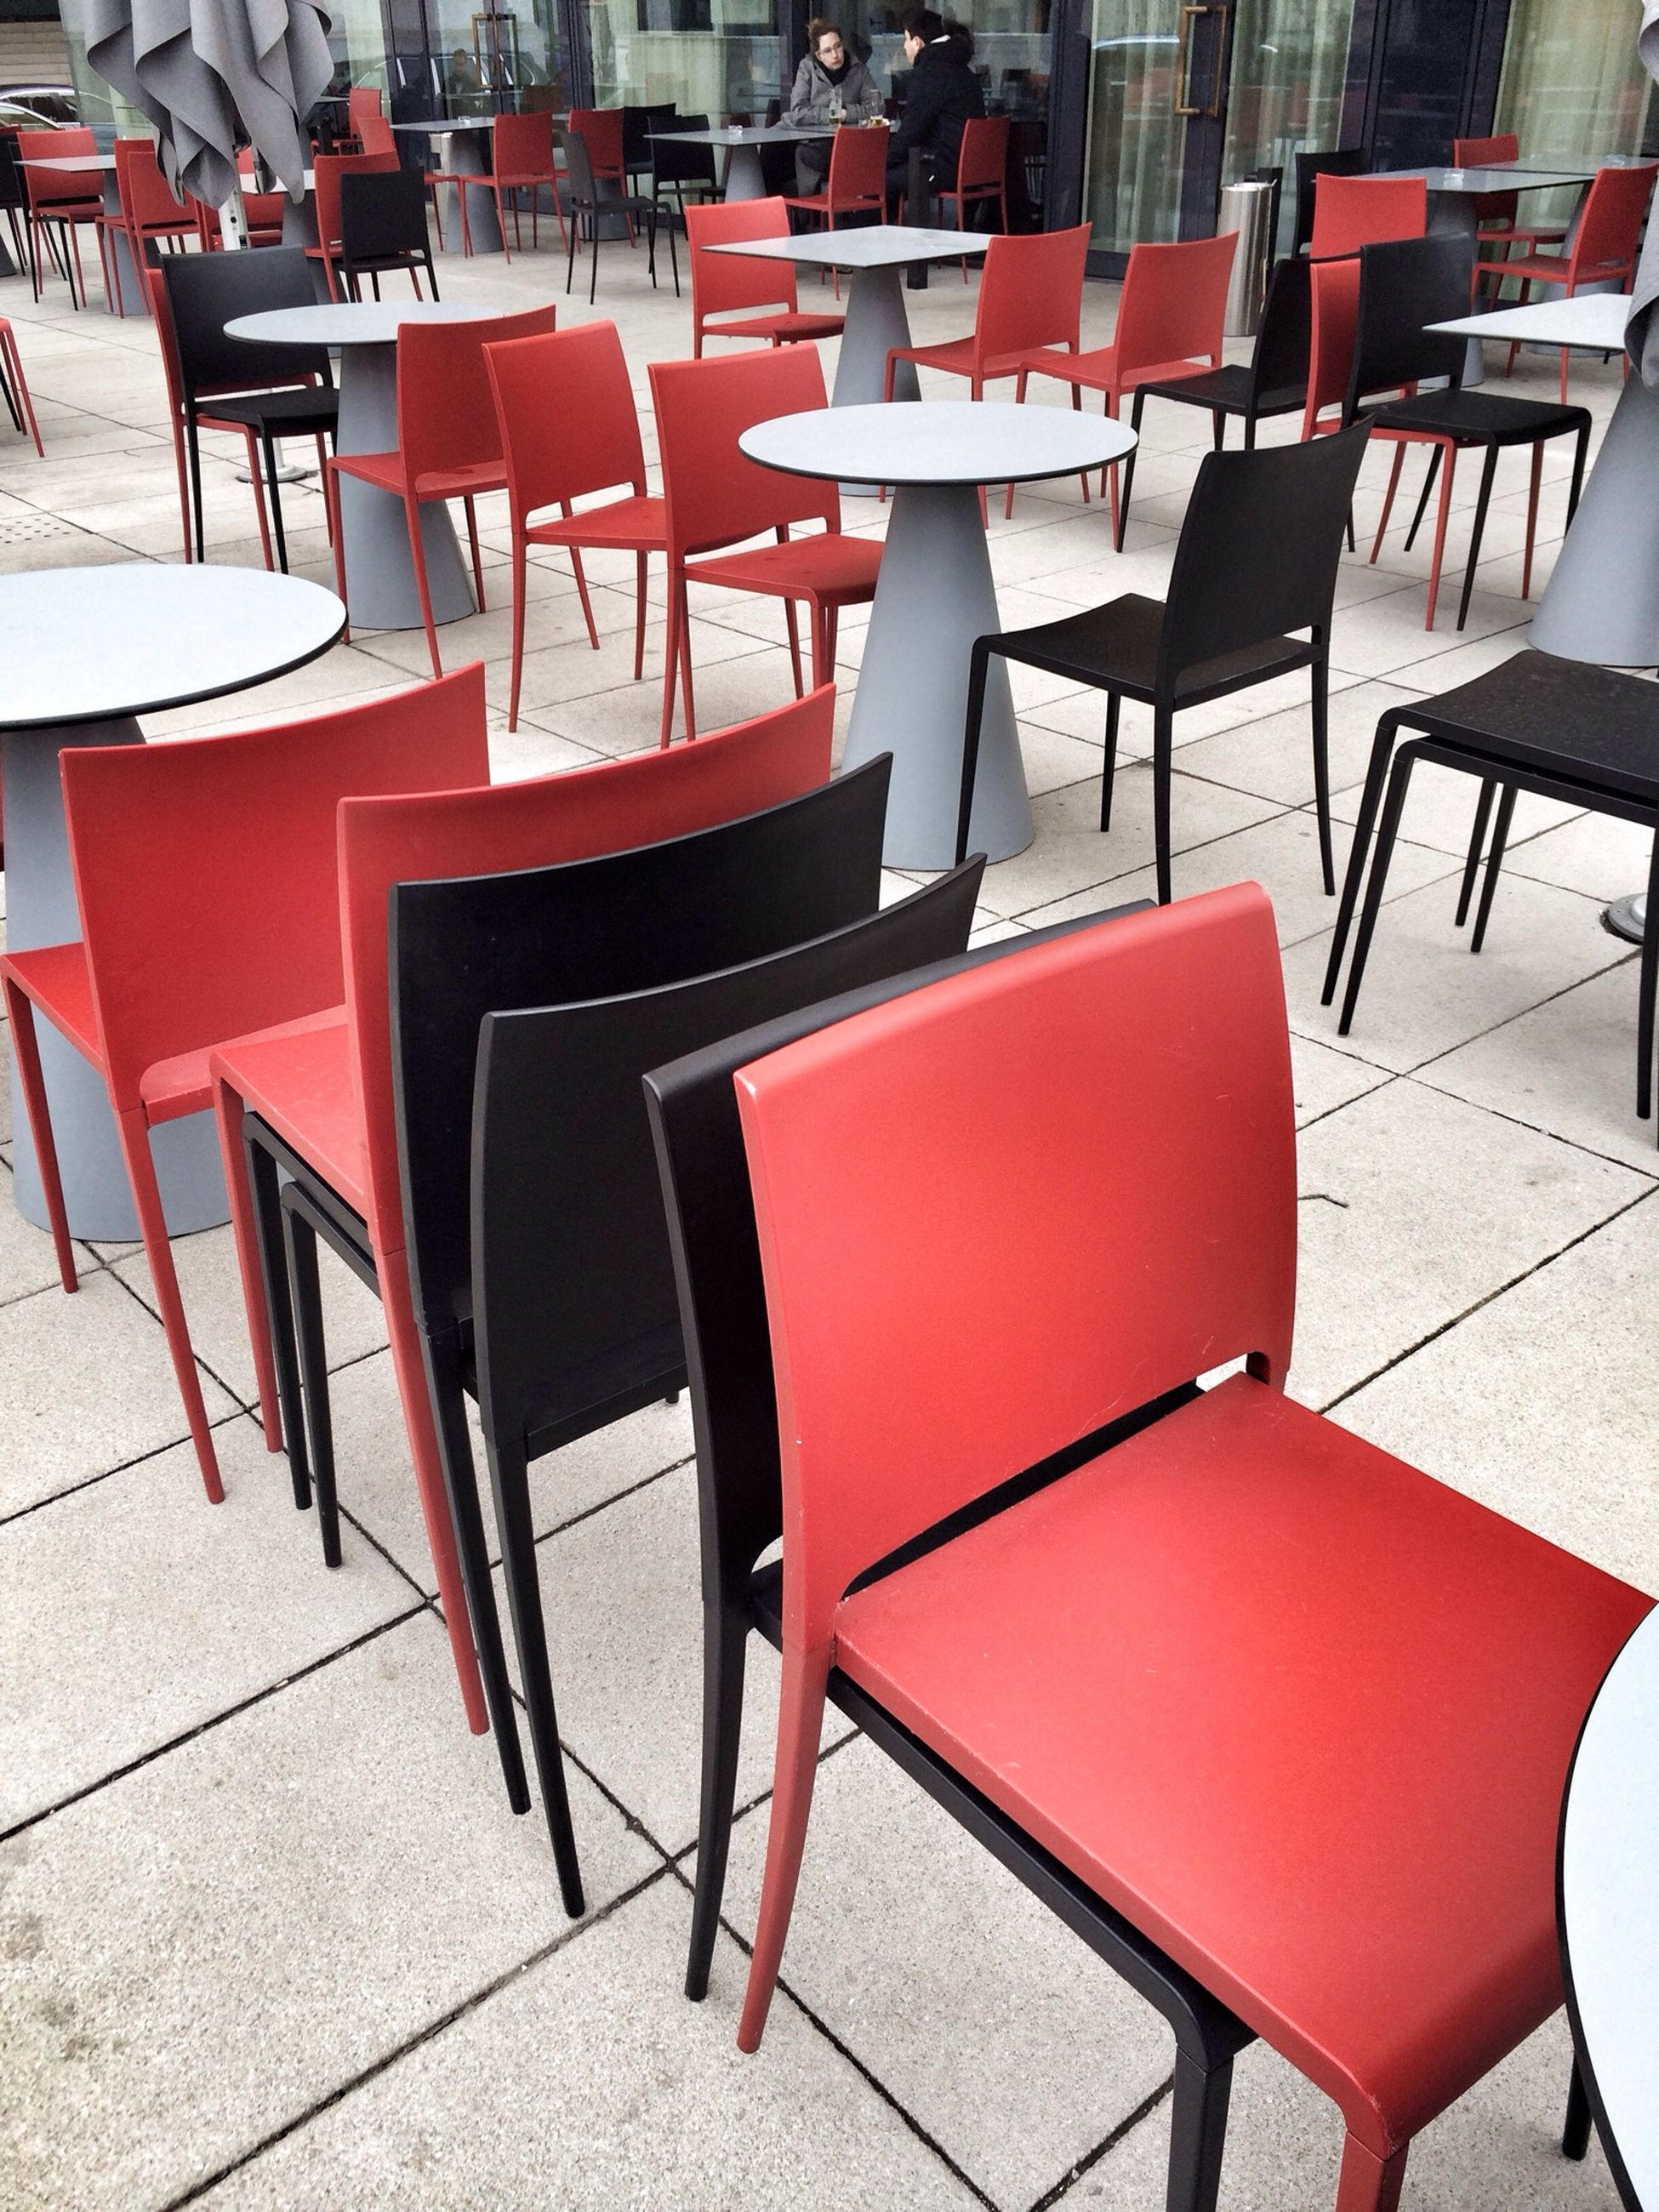 chair, empty, table, absence, seat, indoors, furniture, high angle view, tiled floor, arrangement, restaurant, in a row, sidewalk cafe, sunlight, shadow, red, built structure, flooring, no people, pattern